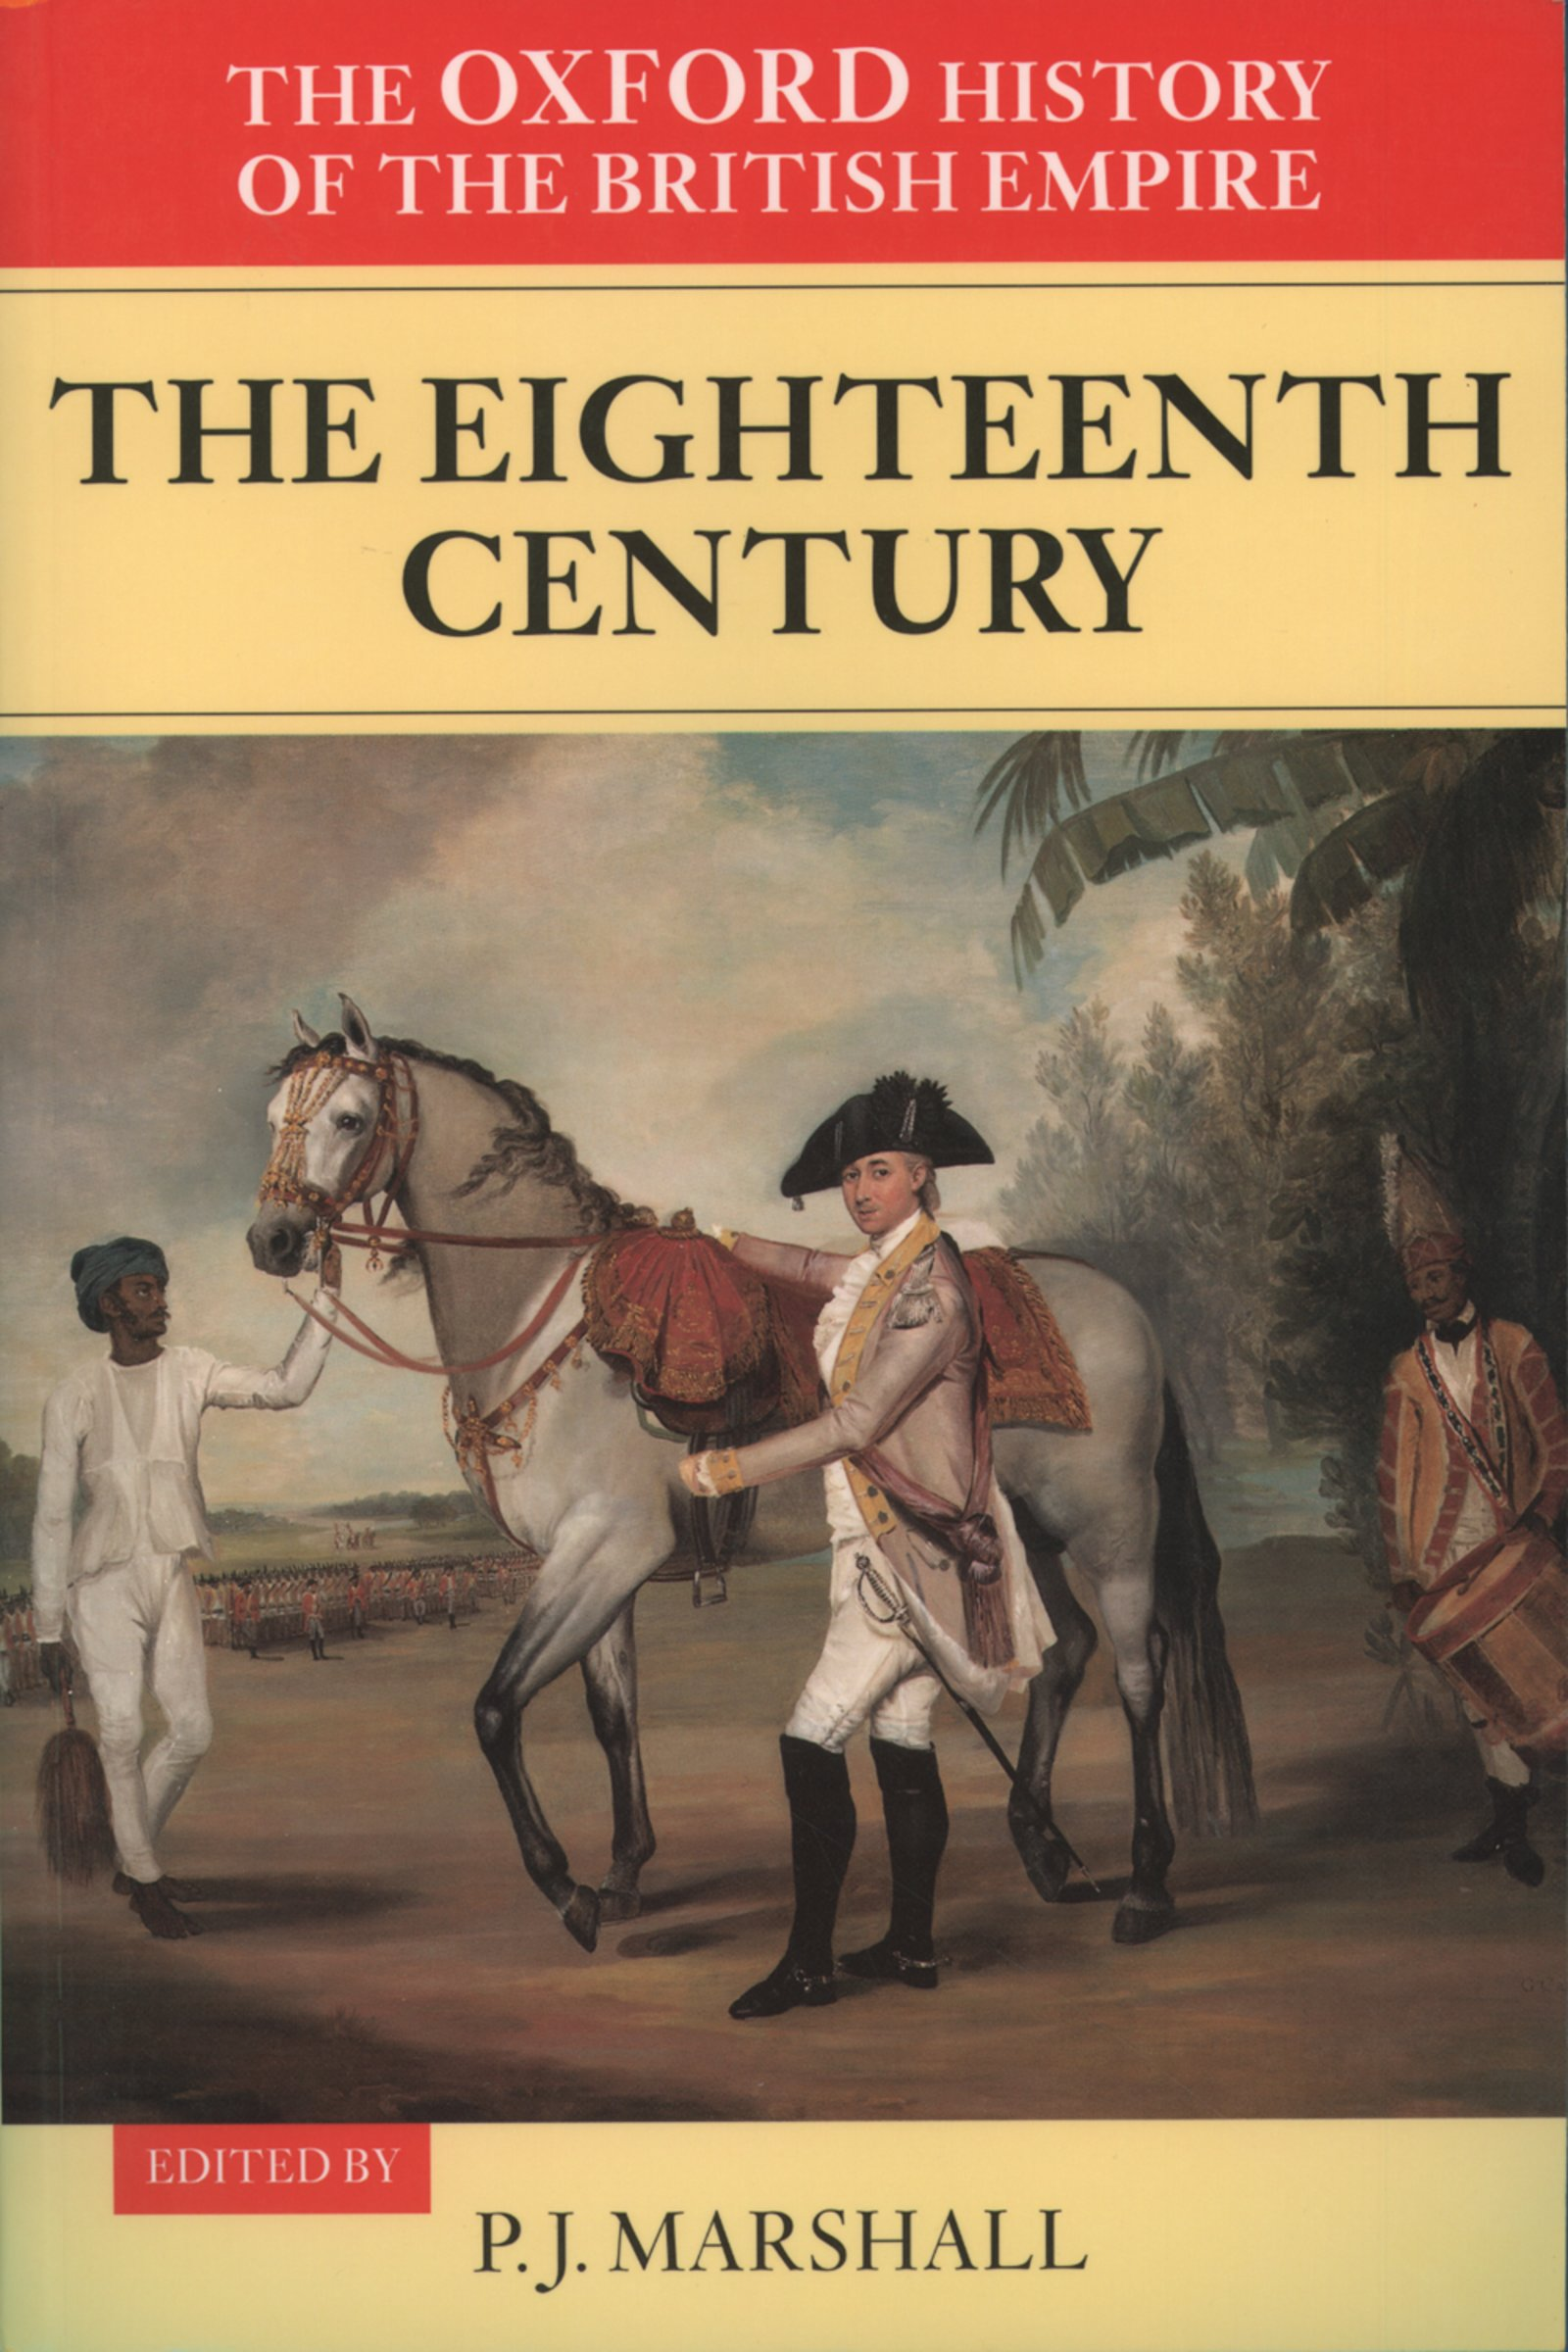 Download Ebook The Oxford History of the British Empire: Volume II: The Eighteenth Century by P. J. Marshall Pdf